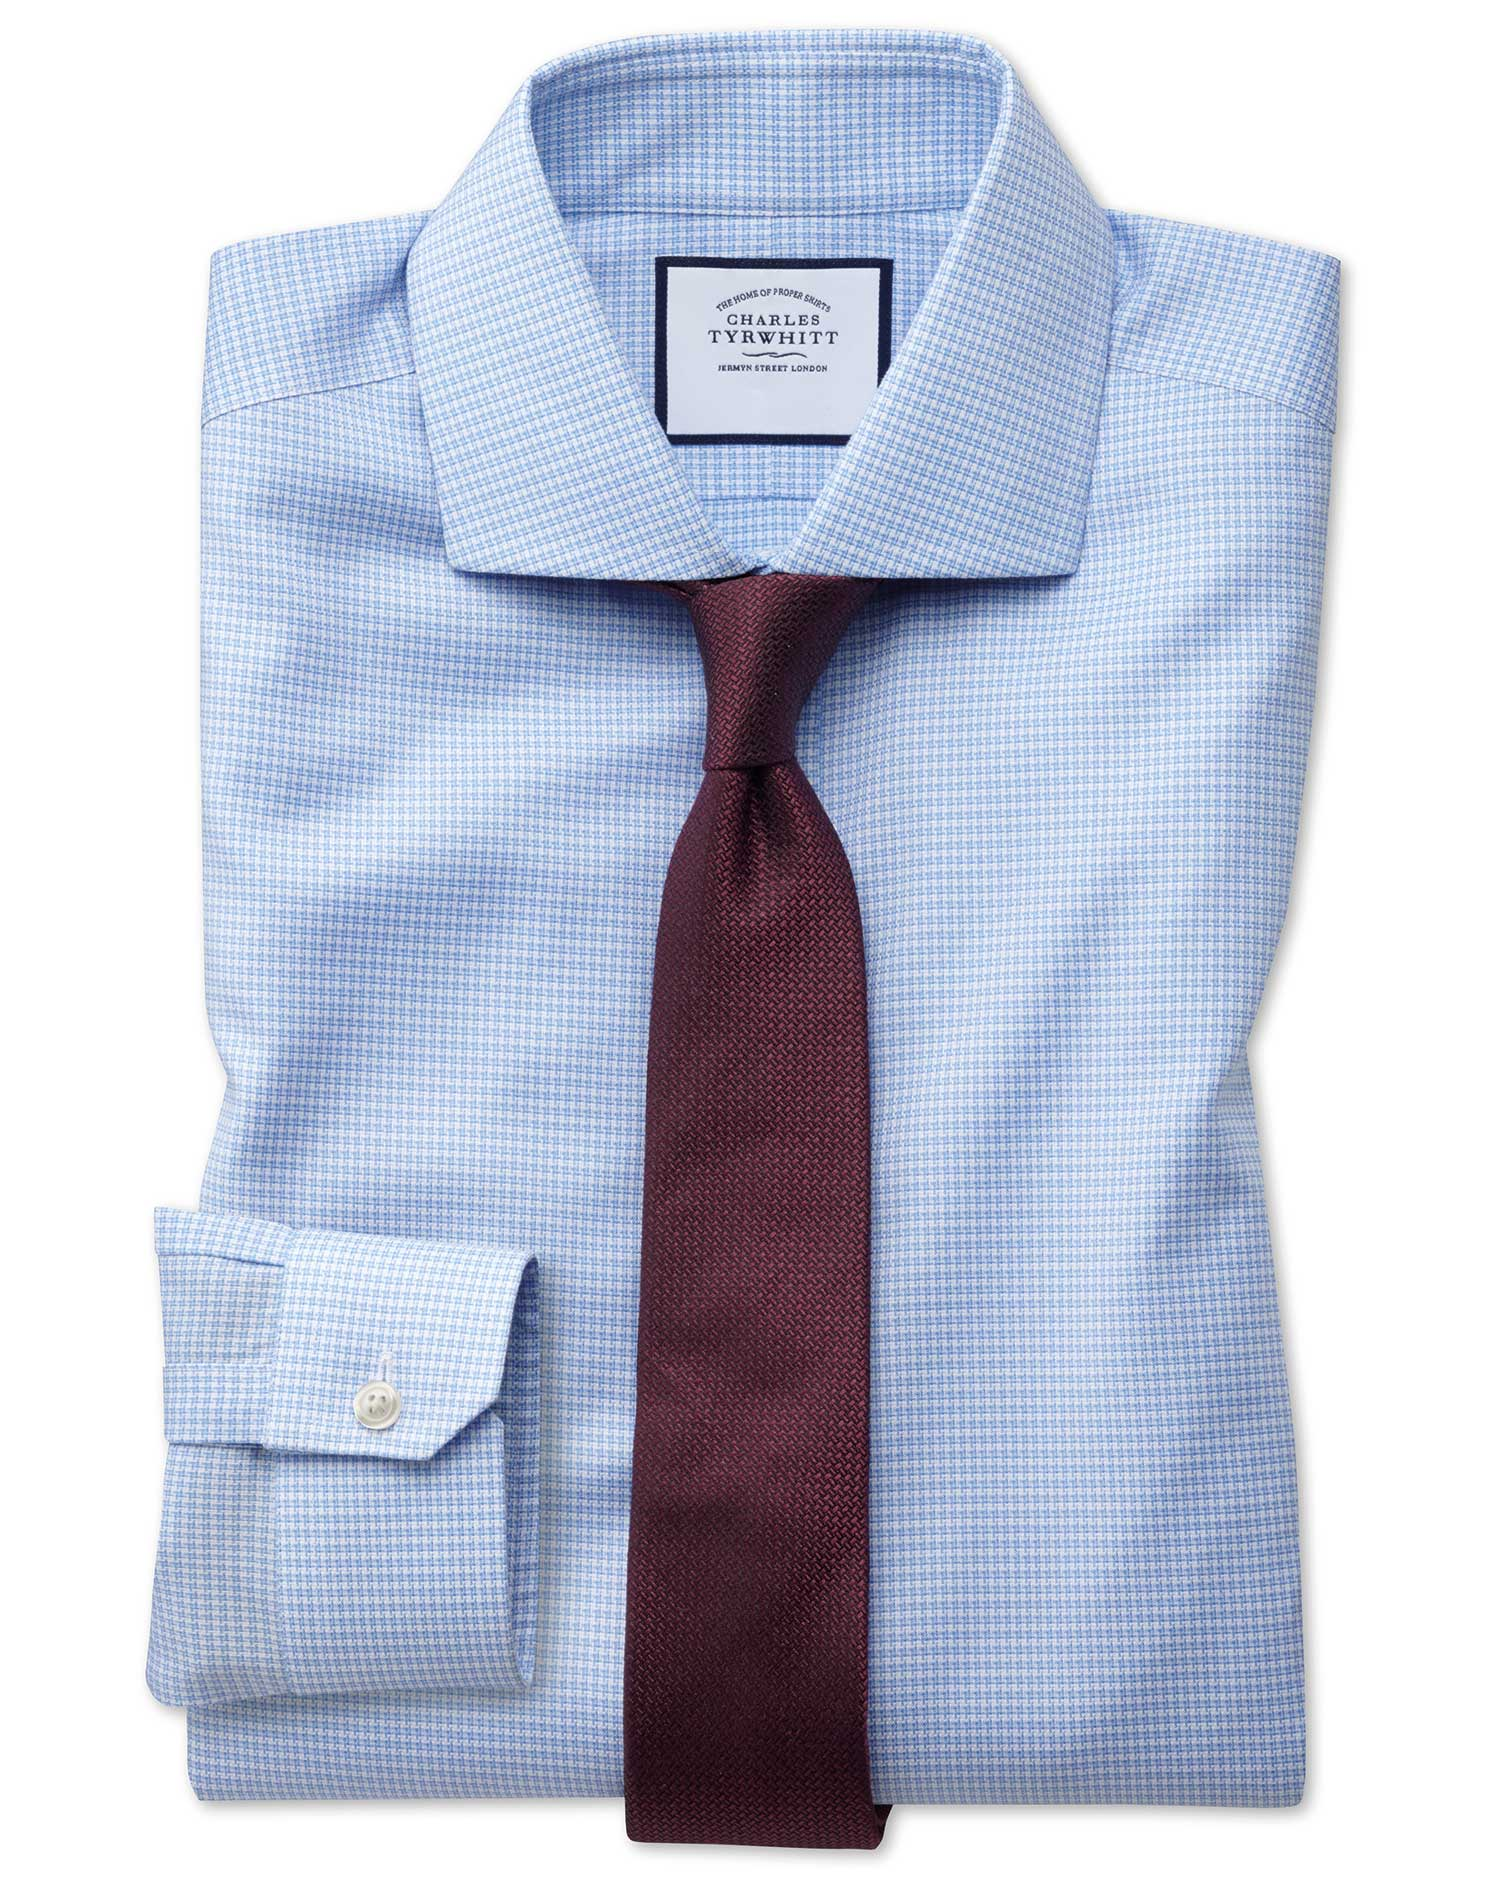 Super Slim Fit Non-Iron Cutaway Collar Sky Blue Puppytooth Oxford Stretch Cotton Formal Shirt Single